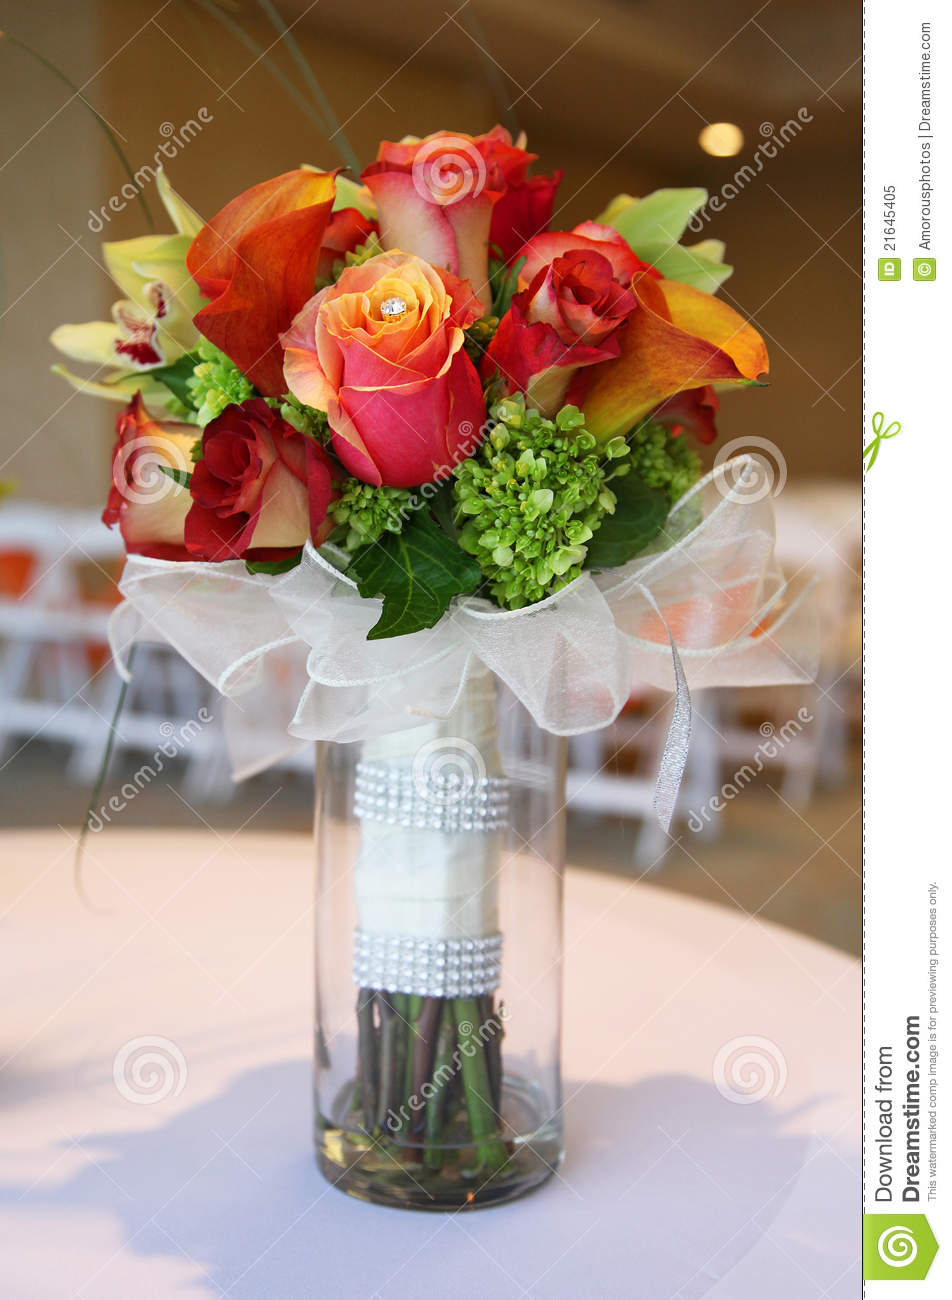 Tropical Wedding Bouquet Royalty Free Stock Photo  Image 21645405